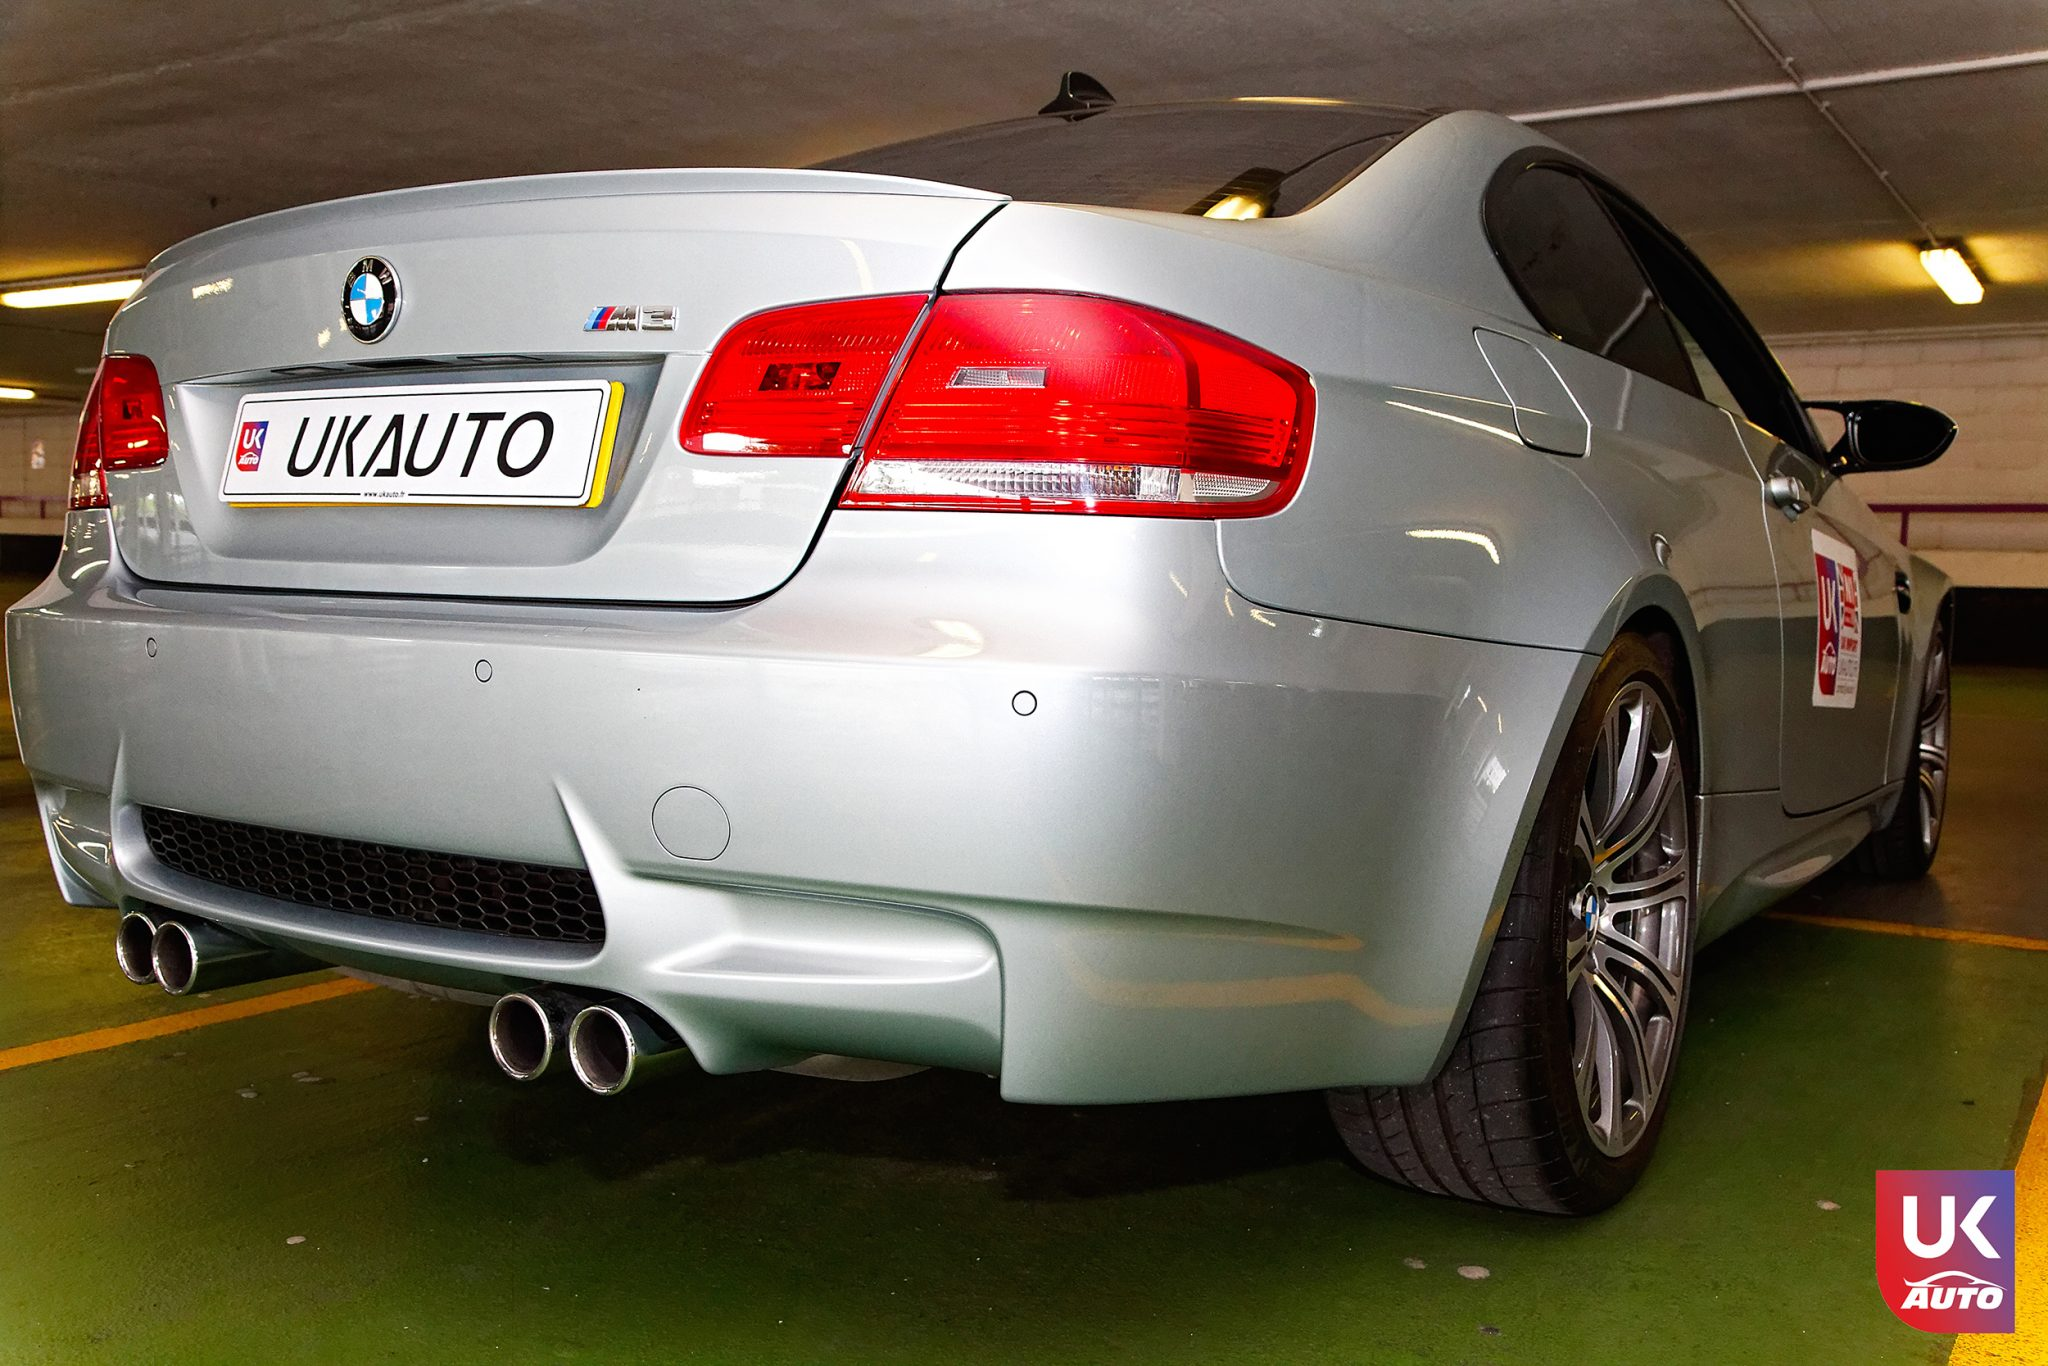 ukauto uk import bmw angleterre bmw m3 rhd e92 v8 mandataire uk angleterre voiture2 - Felicitation a Philippe BMW M3 E92 RHD POUR IMPORTER UNE VOITURE EN ANGLETERRE